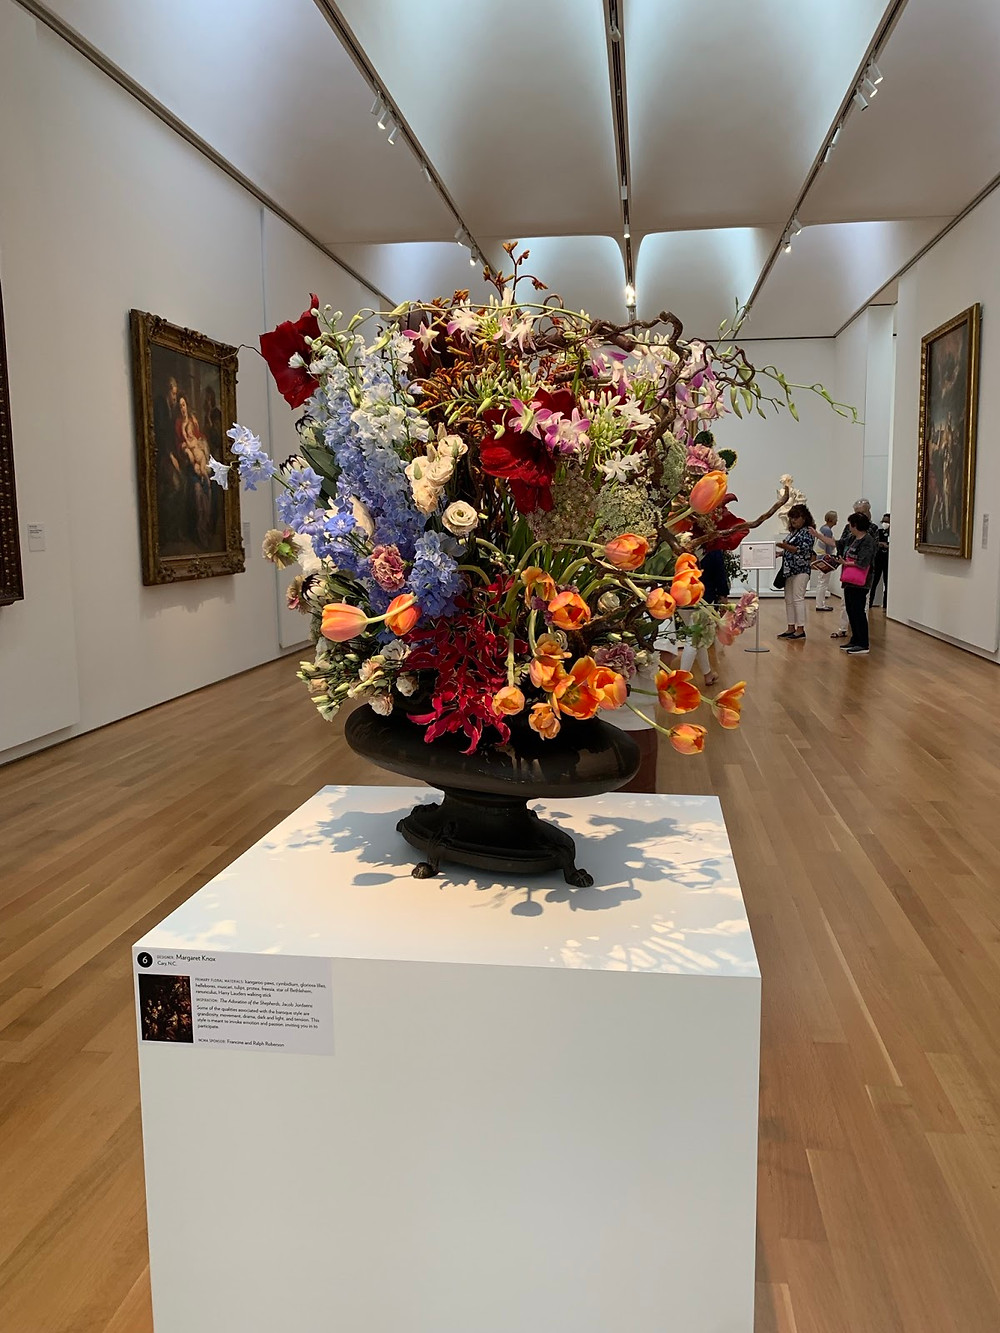 A vase with blue, orange, red, and pink flowers